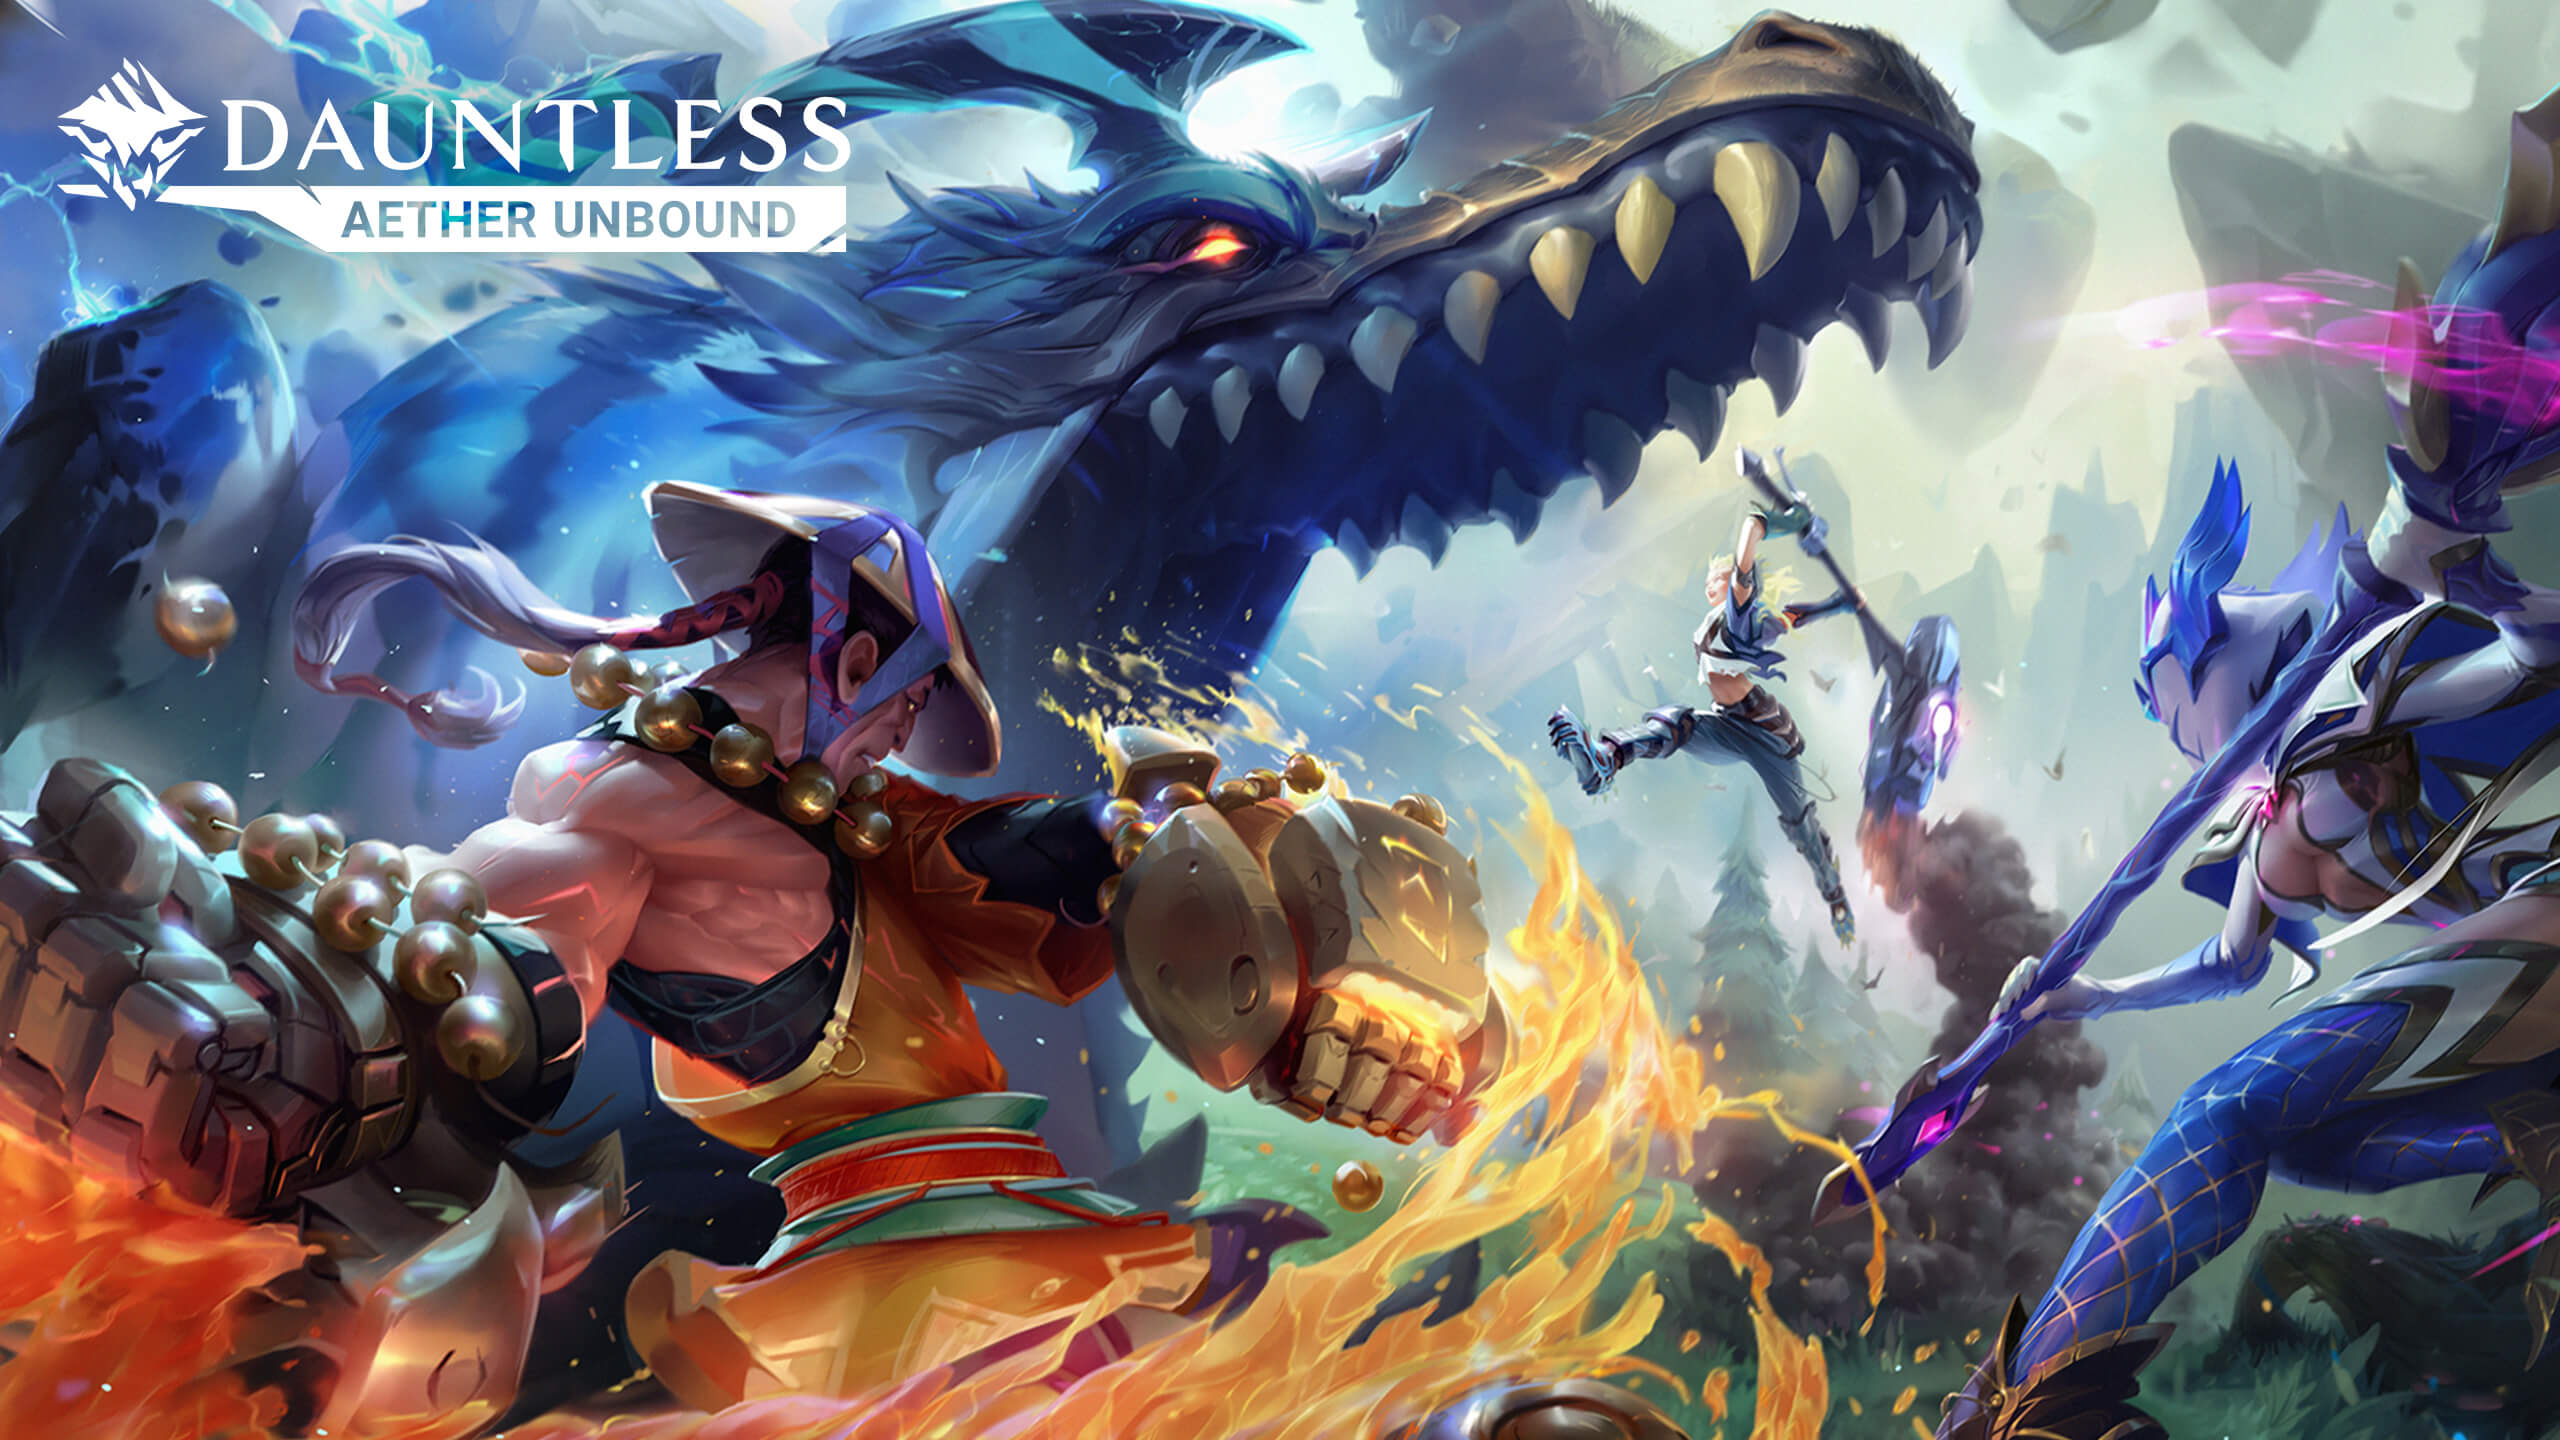 Dauntless Leaves Early Access with New Season: Aether Unbound